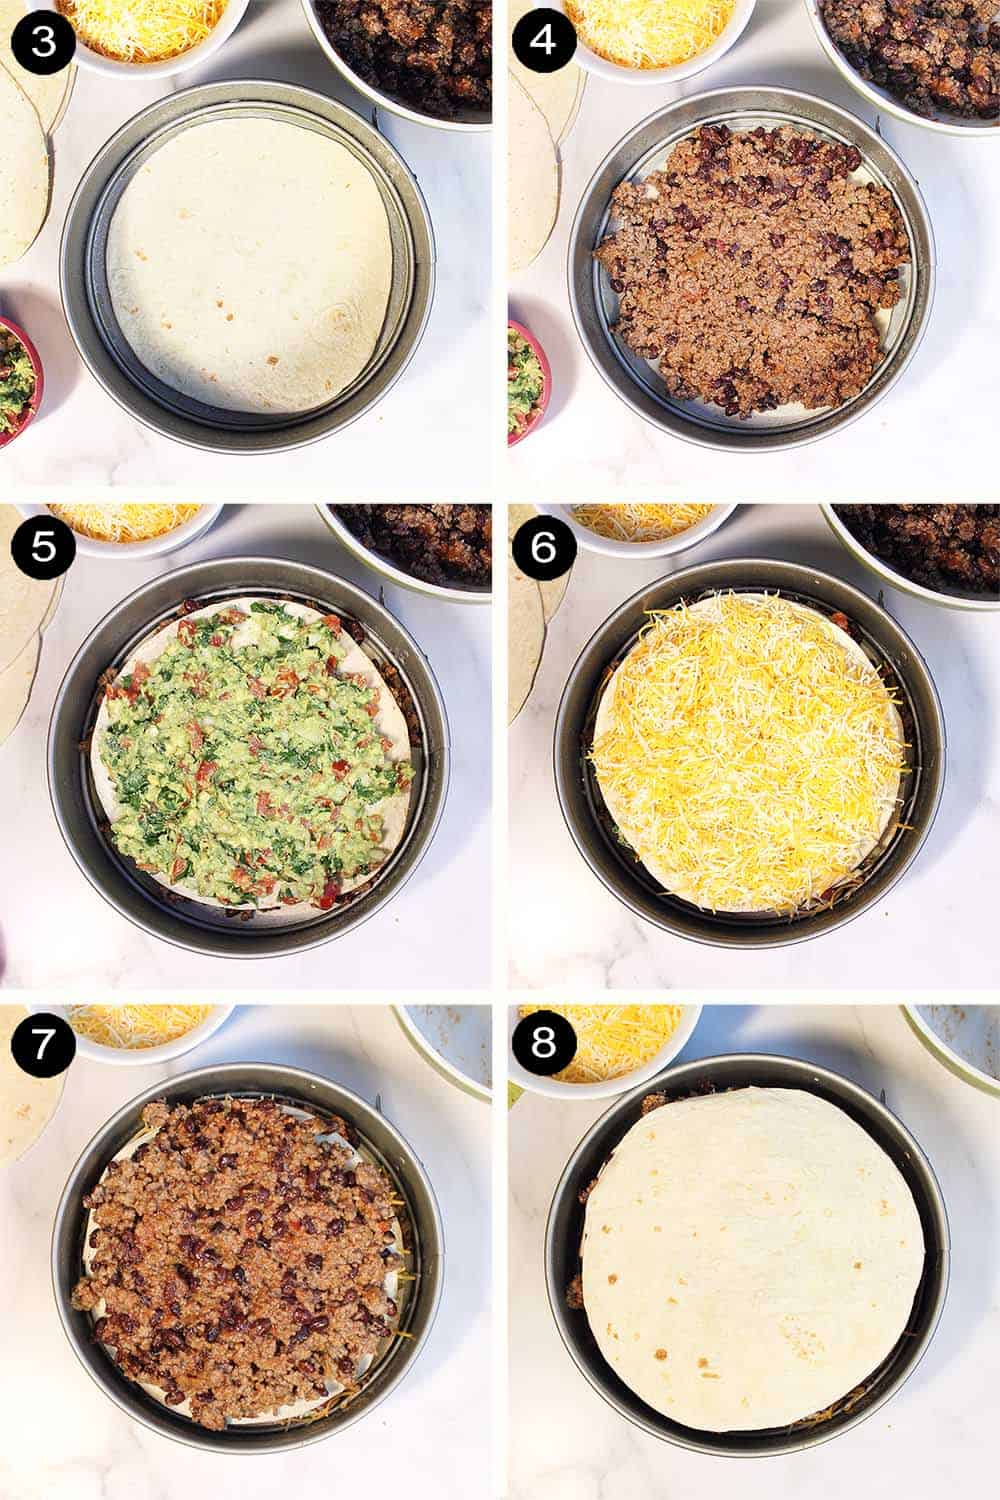 Assembling the tortilla stack in layers of ground beef, guacamole and cheese.